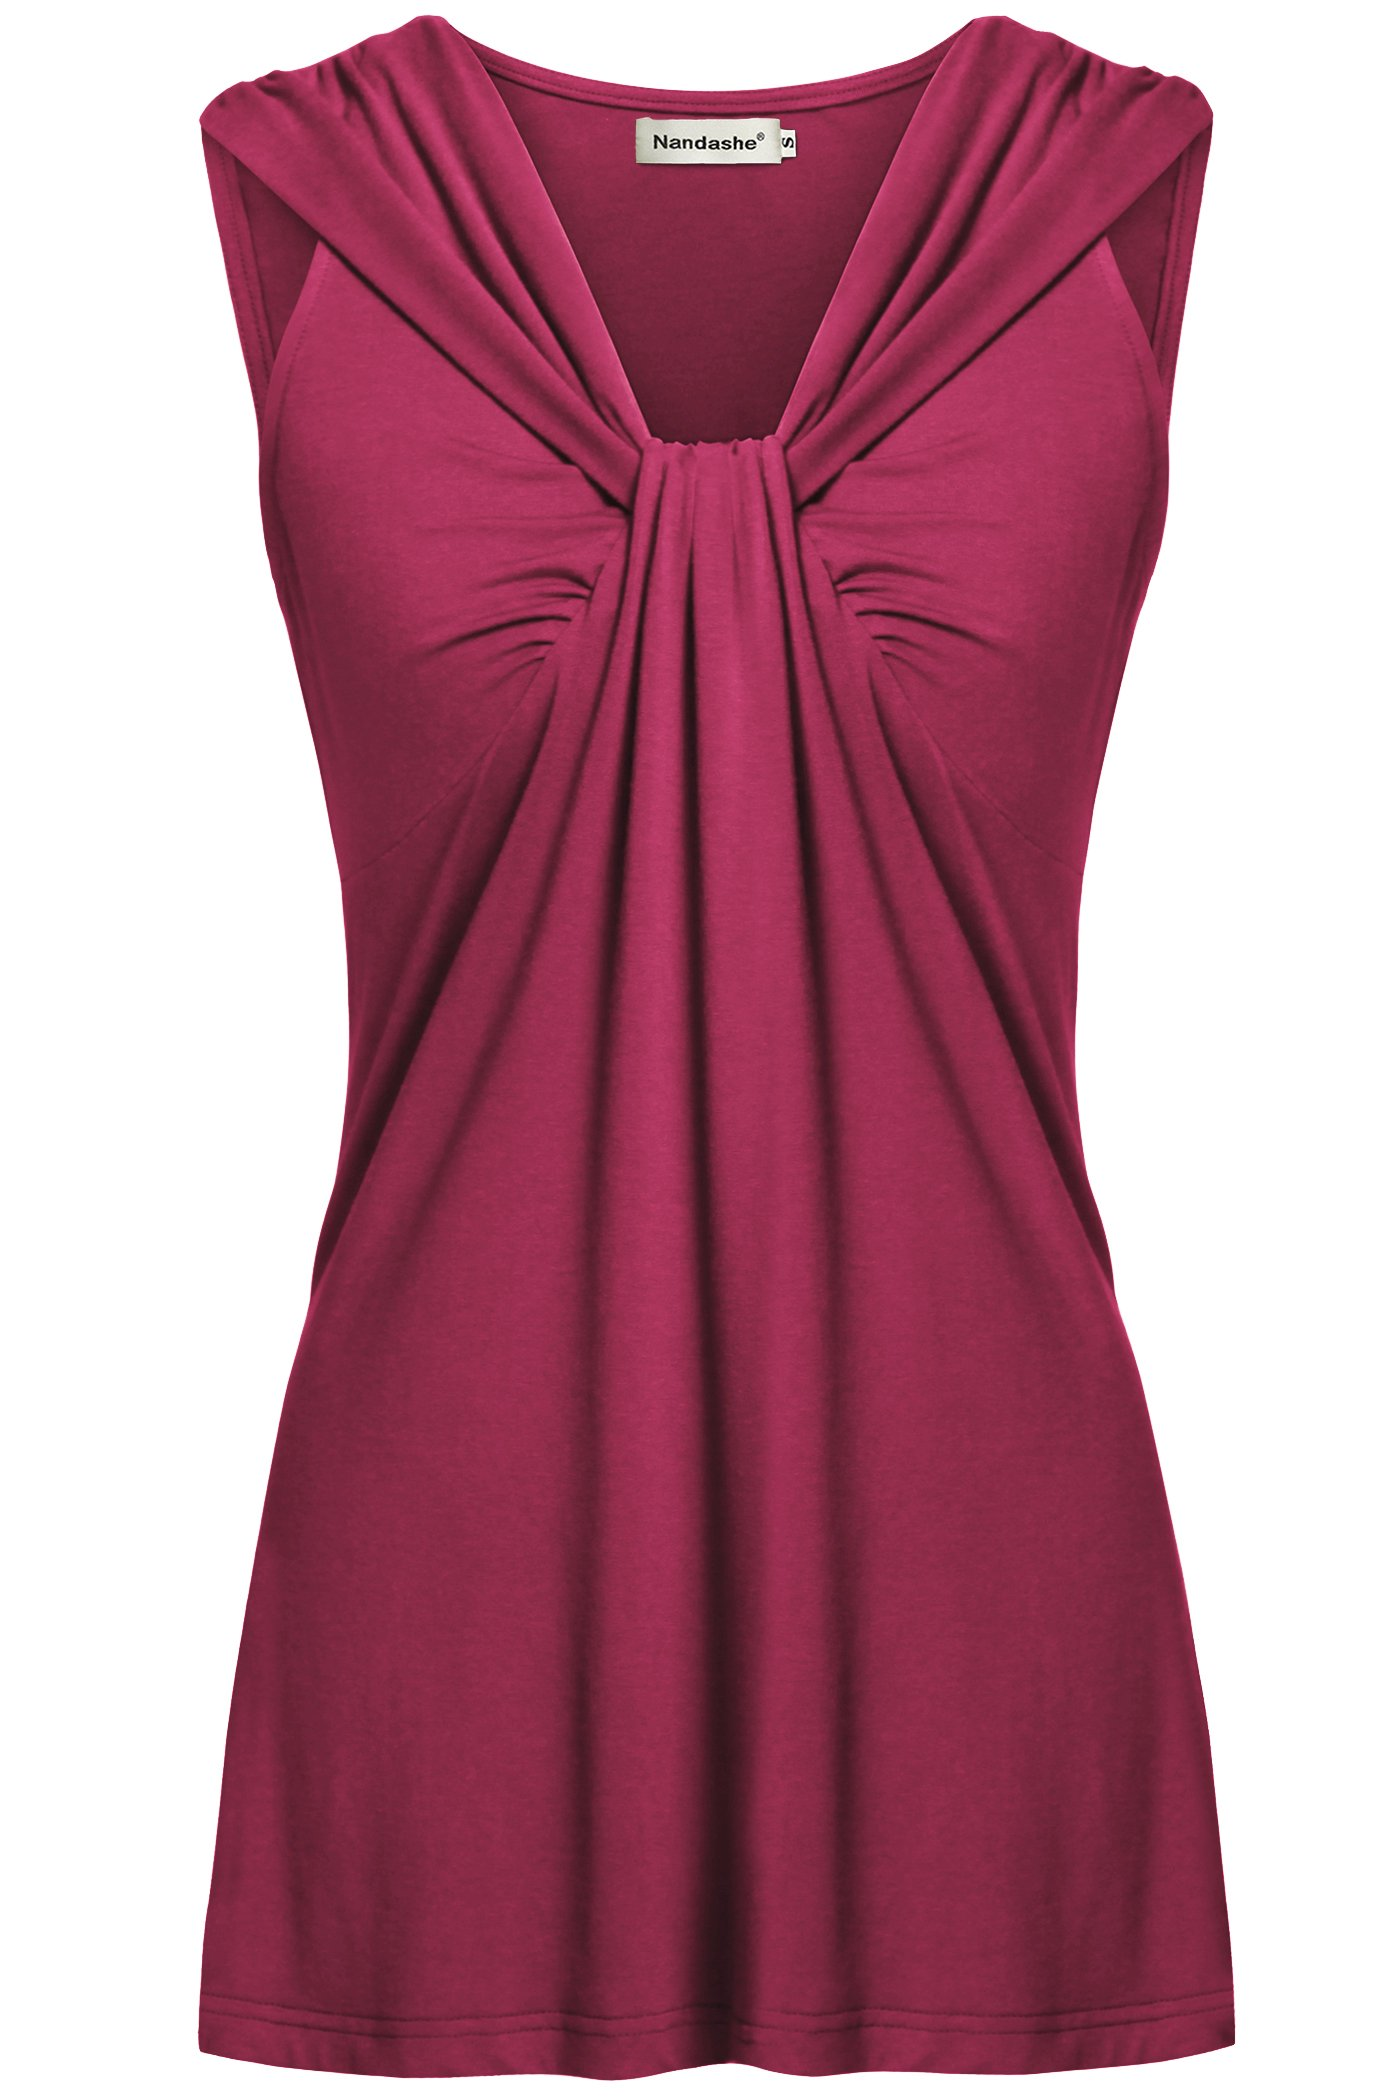 Nandashe Womans Tops Summer, Nice Knot Loose Knitted Stylish Trapeze Flowing Sparkly Pullover Tops Rosered Extra Large